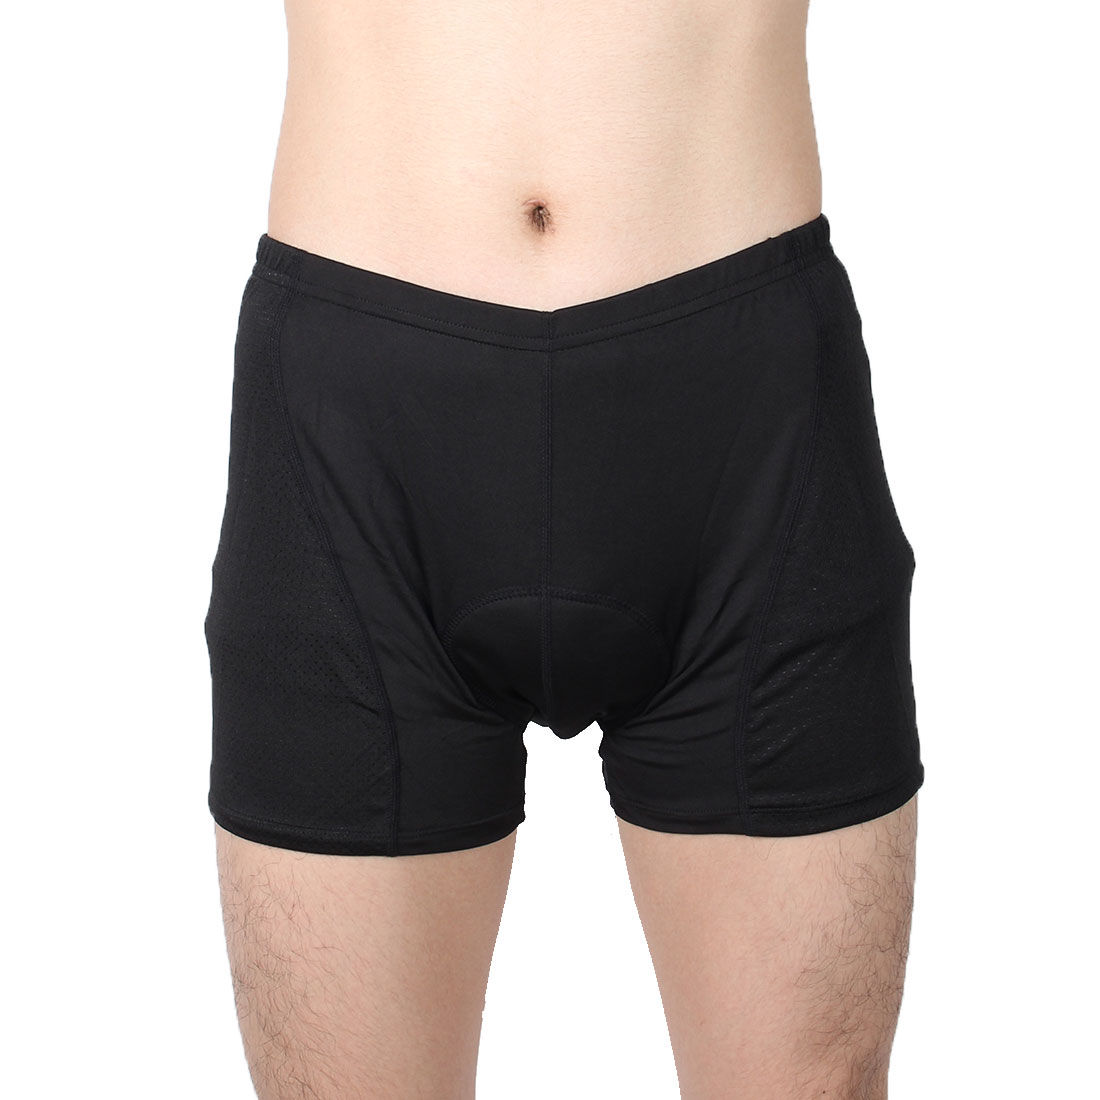 Men Polyester 3D Padded Outdoor Riding Bicycle Biking Underpants Cycling Shorts Black L